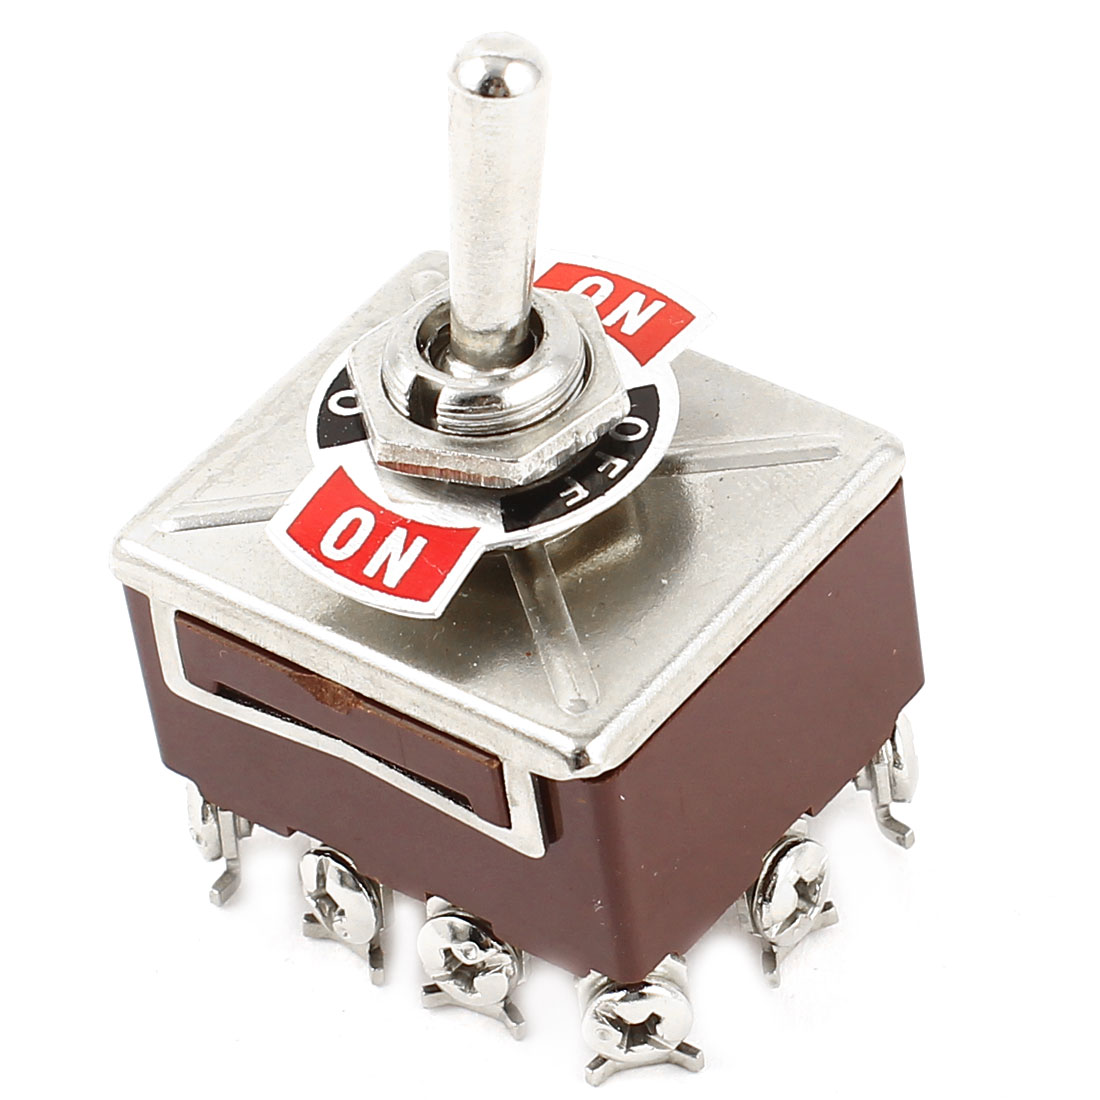 AC 250V/15A 380V/10A 12 Screw Termials 4PDT 3Position On/Off/On Toggle Switch